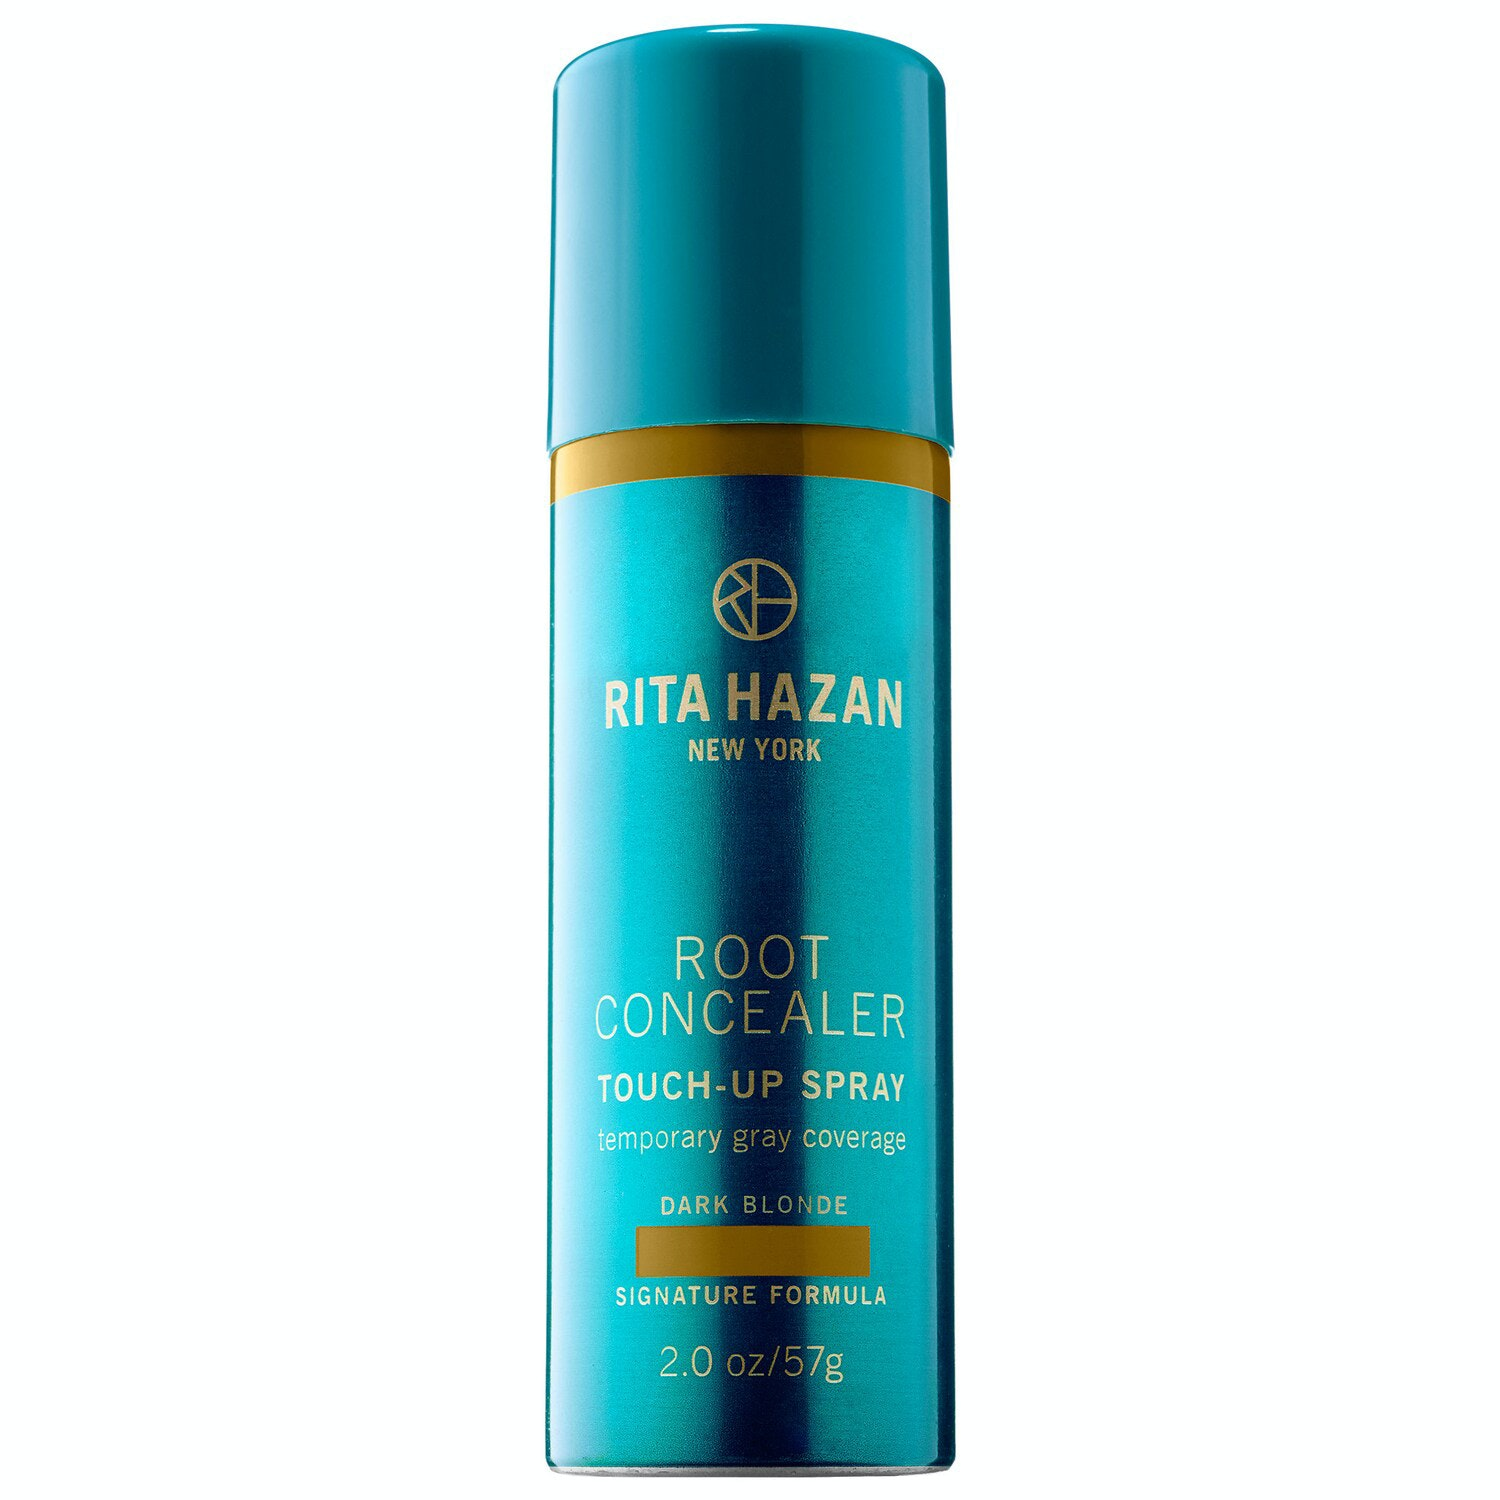 Rita Hazan® Root Concealer Touch-Up Spray